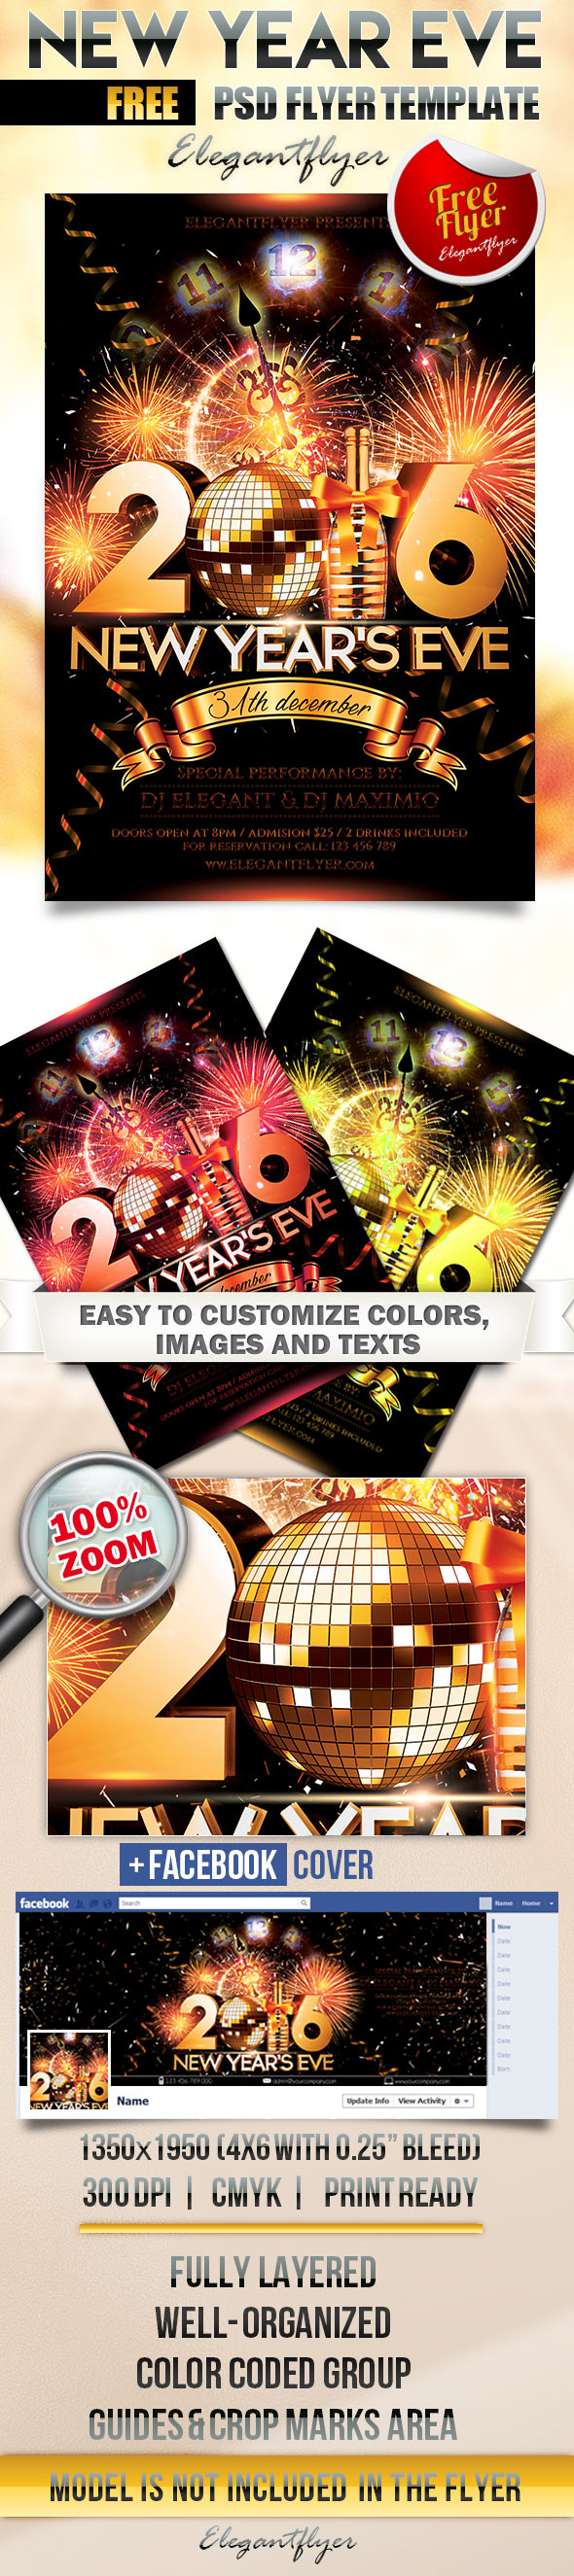 New Year's Eve Flyer Template Free